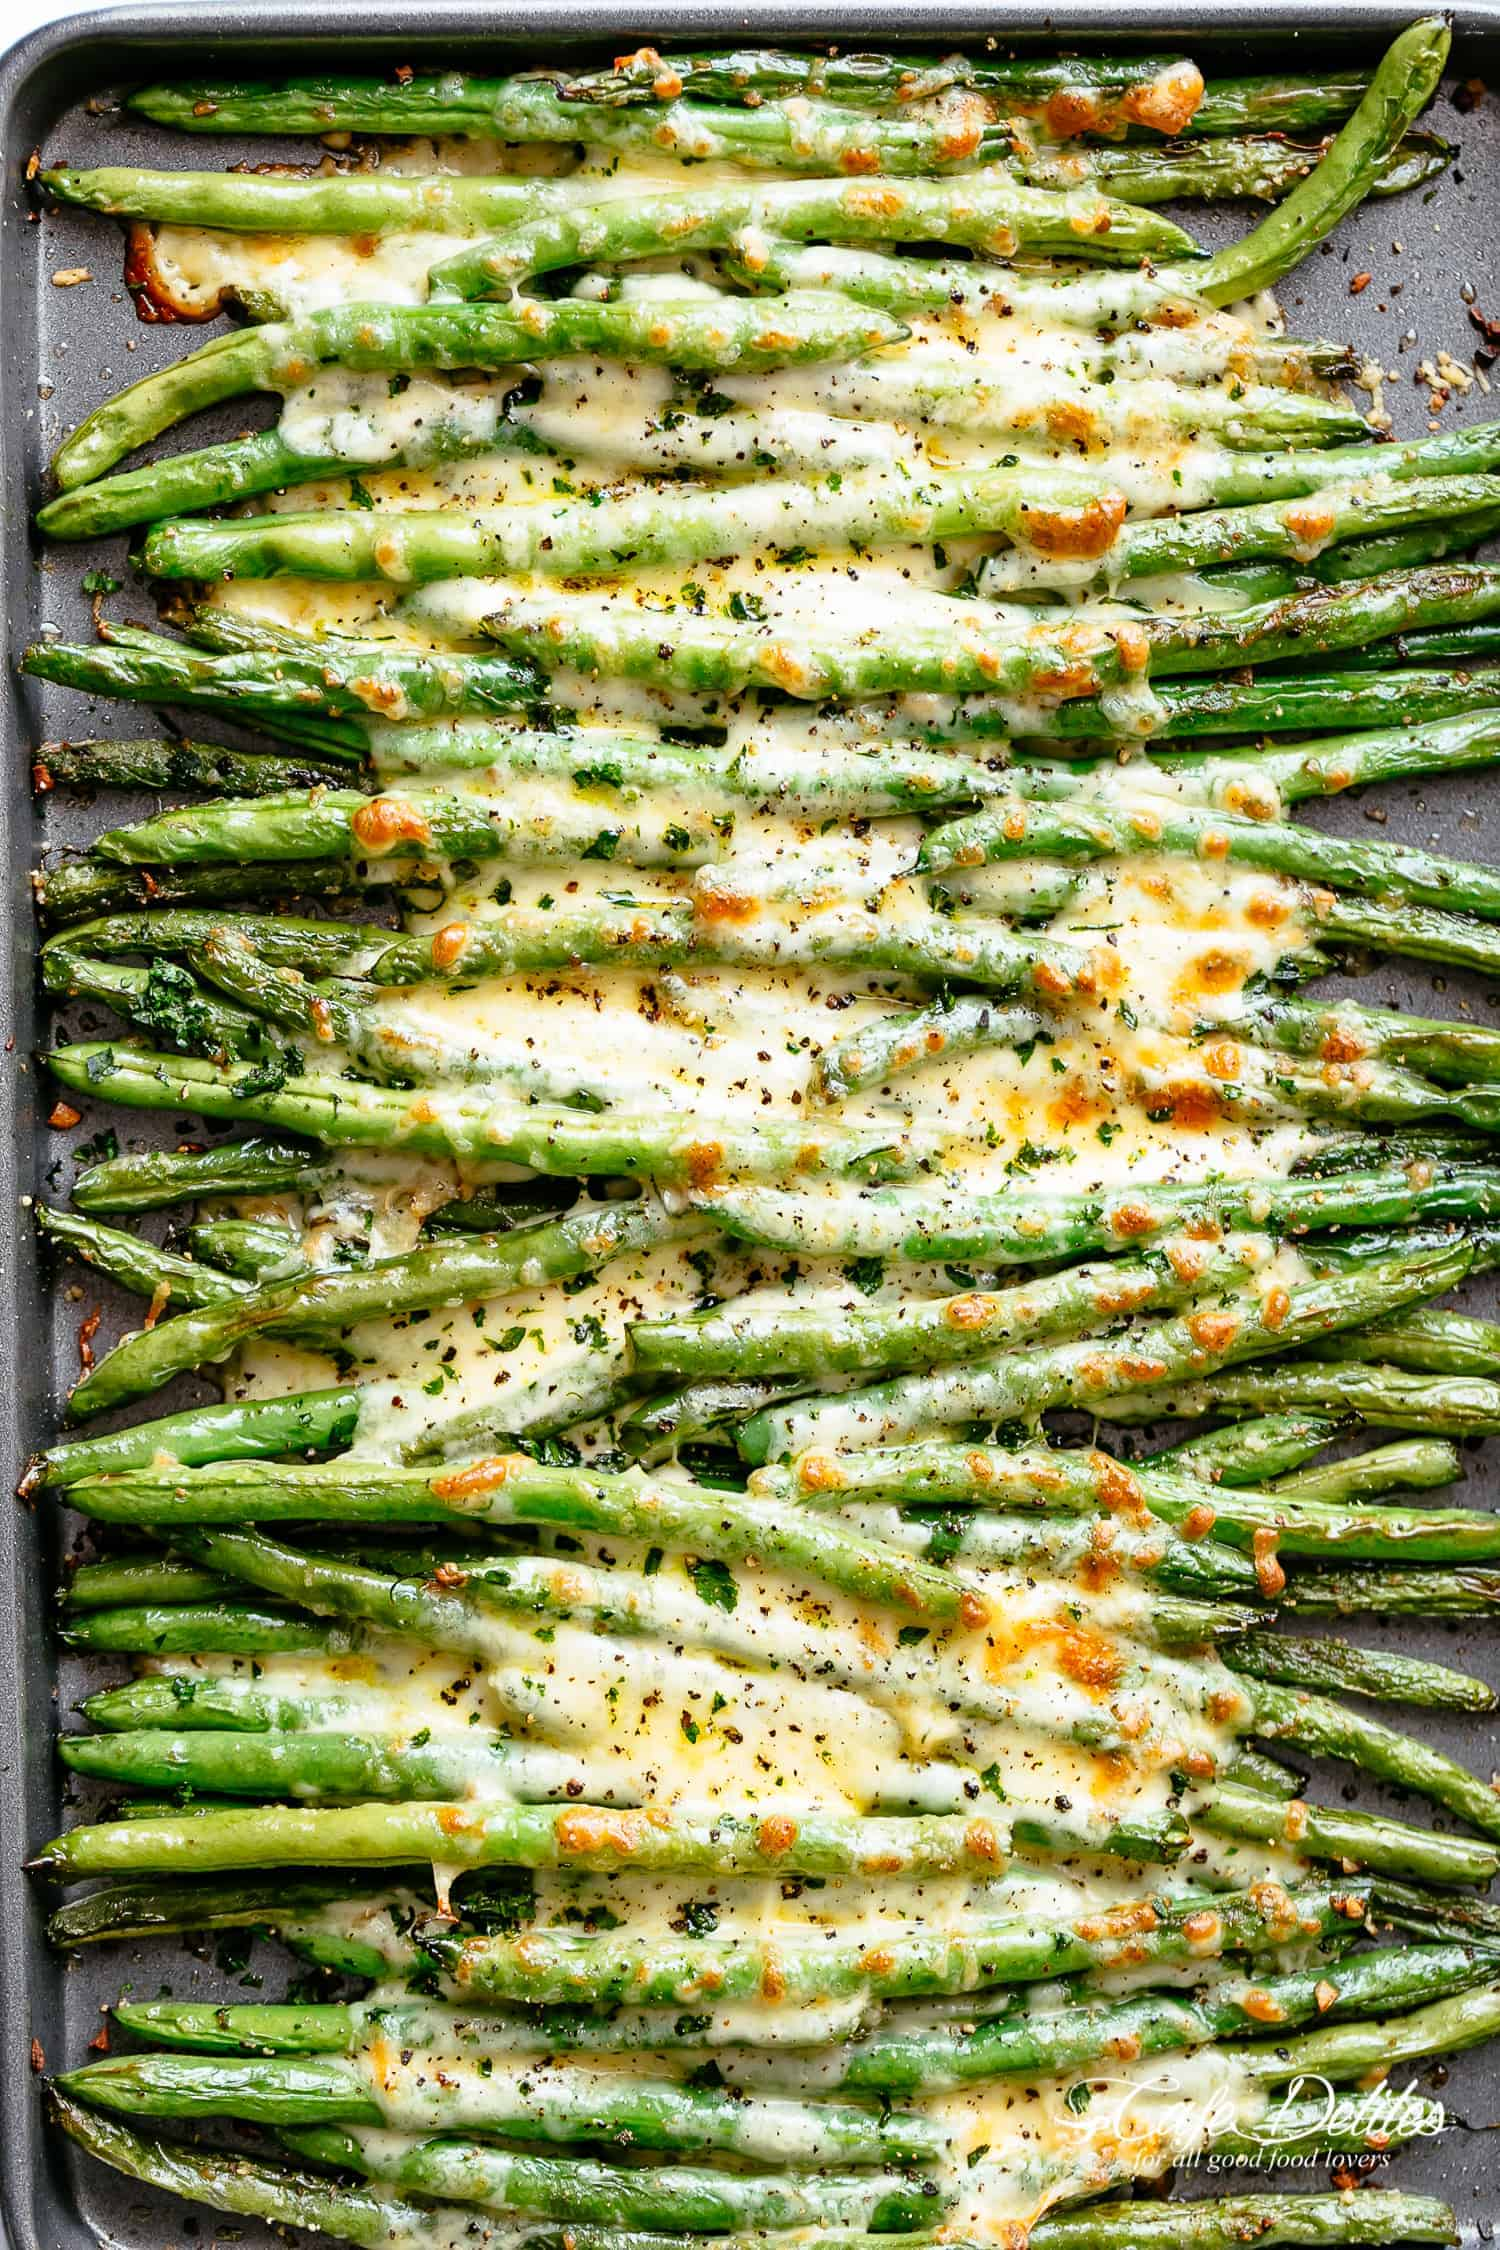 A tray of roasted green beans with melted cheese